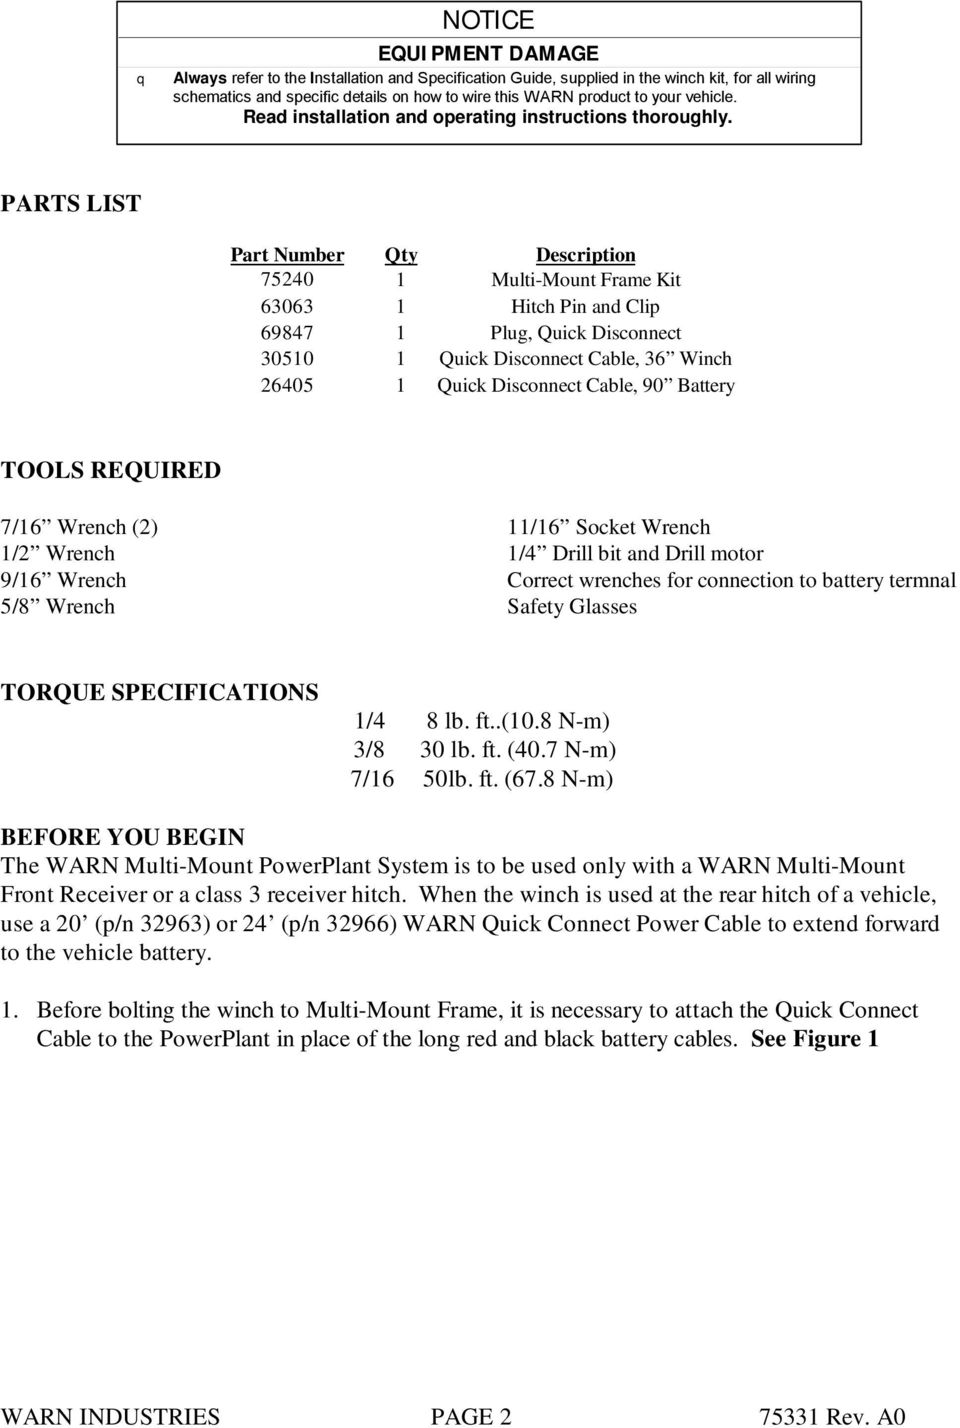 PARTS LIST Part Number Qty Description 75240 1 Multi-Mount Frame Kit 63063 1 Hitch Pin and Clip 69847 1 Plug, Quick Disconnect 30510 1 Quick Disconnect Cable, 36 Winch 26405 1 Quick Disconnect Cable,